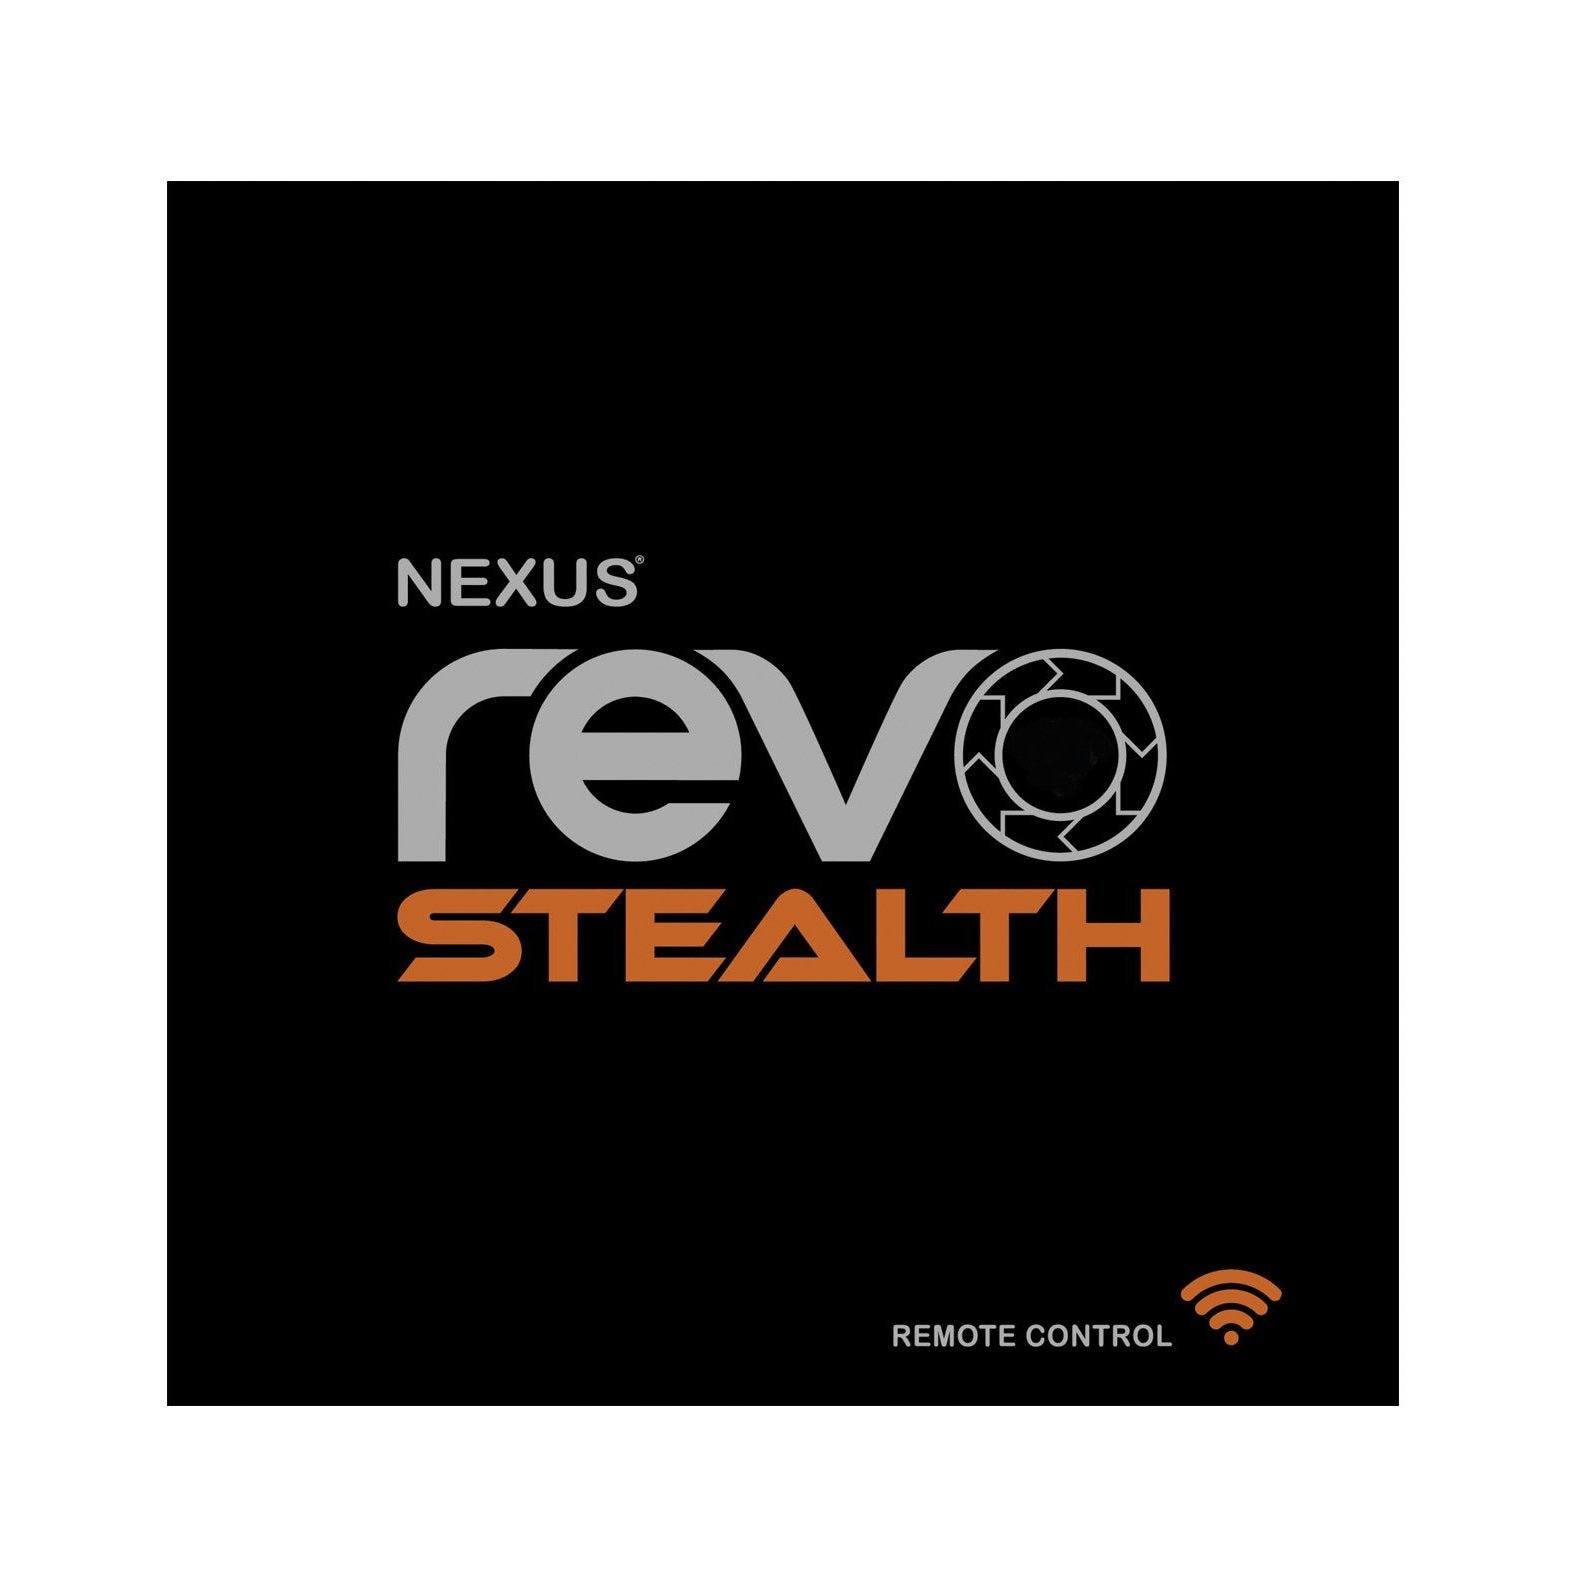 Nexus Revo Stealth Remote Control Rotating Prostate Massager-Adam's Toy Box